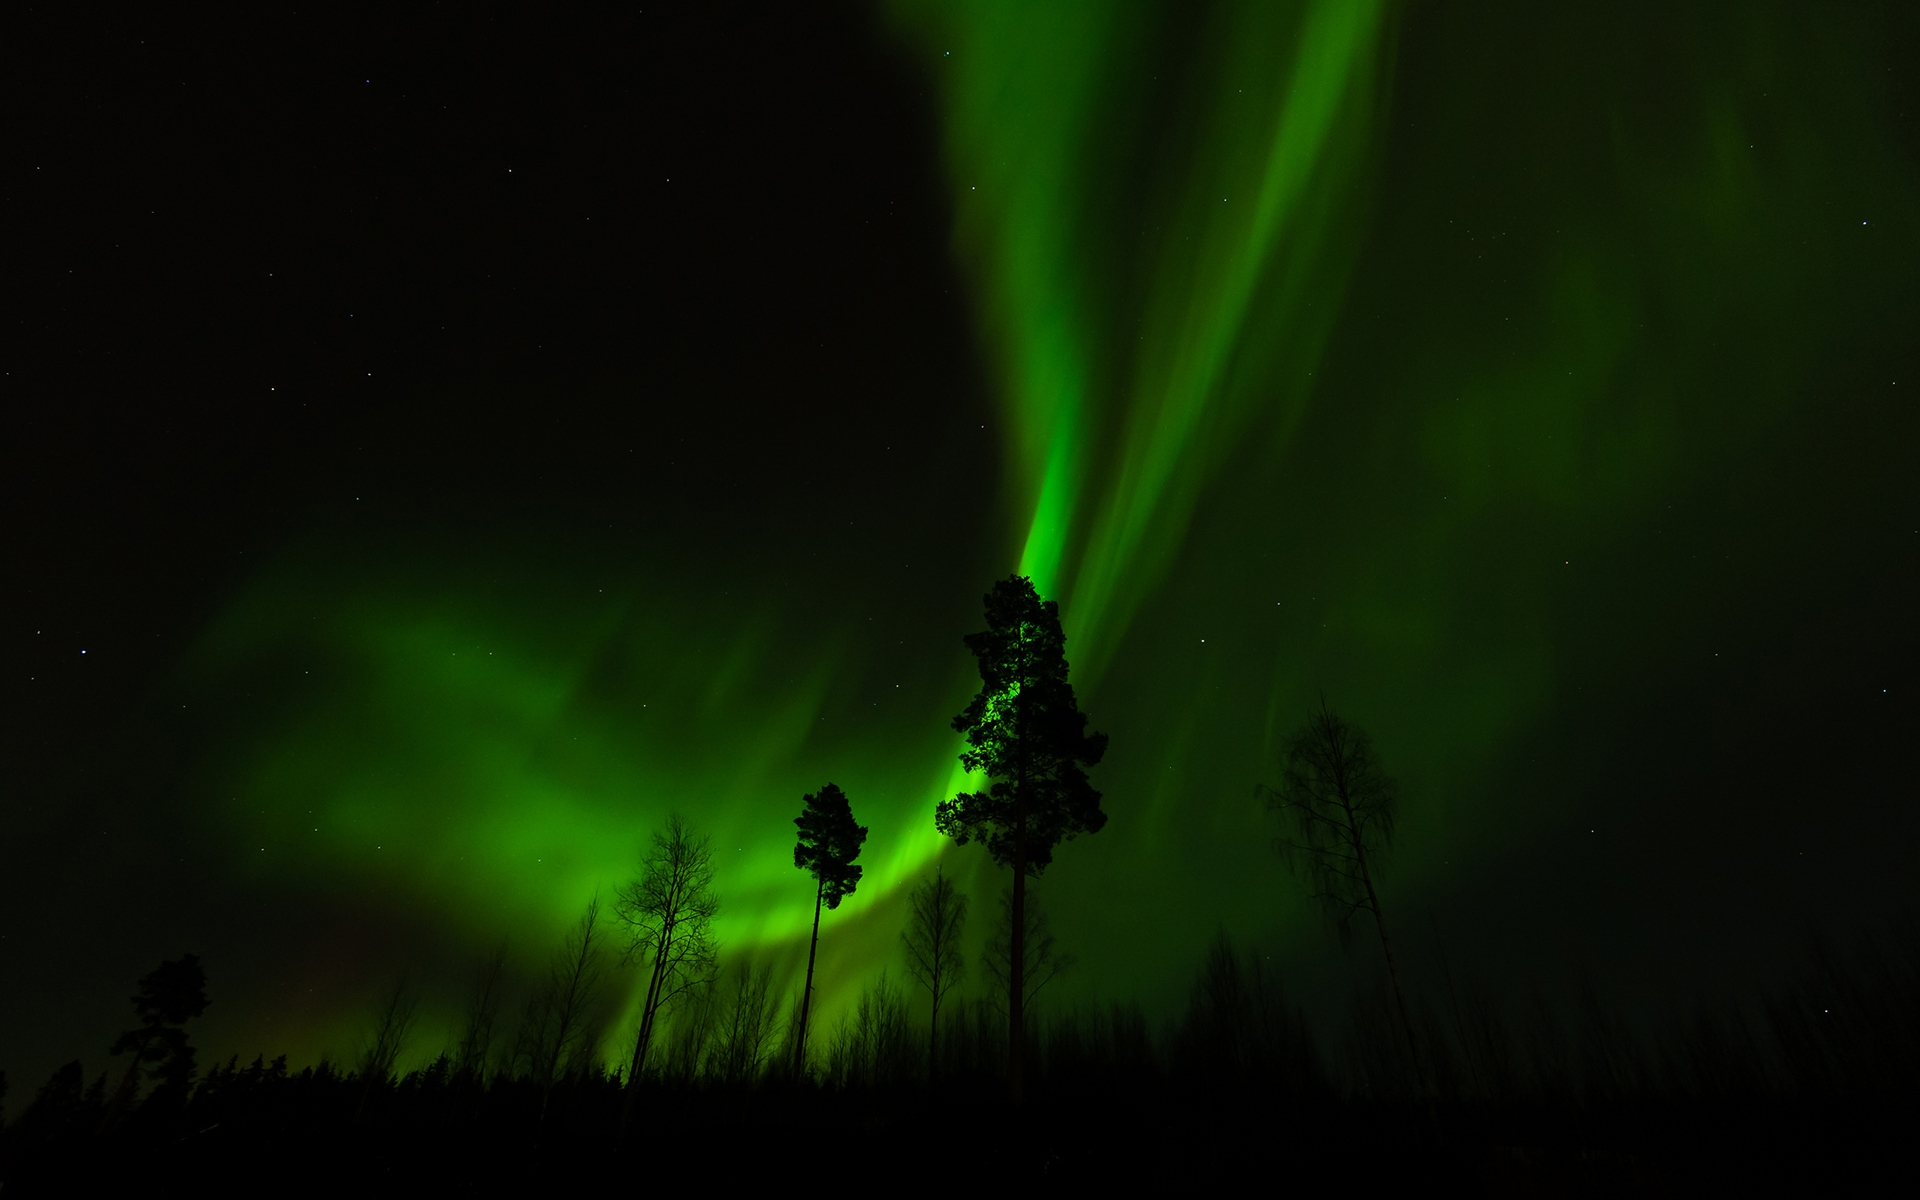 the fantastic show of the northern lights Our best northern lights holidays find here our great selection of northern lights holidays our northern lights tours and packages offer an incredible winter holiday, where you can combine hunting for the elusive aurora borealis with a range of fantastic winter activities and excursions into icelandic nature.